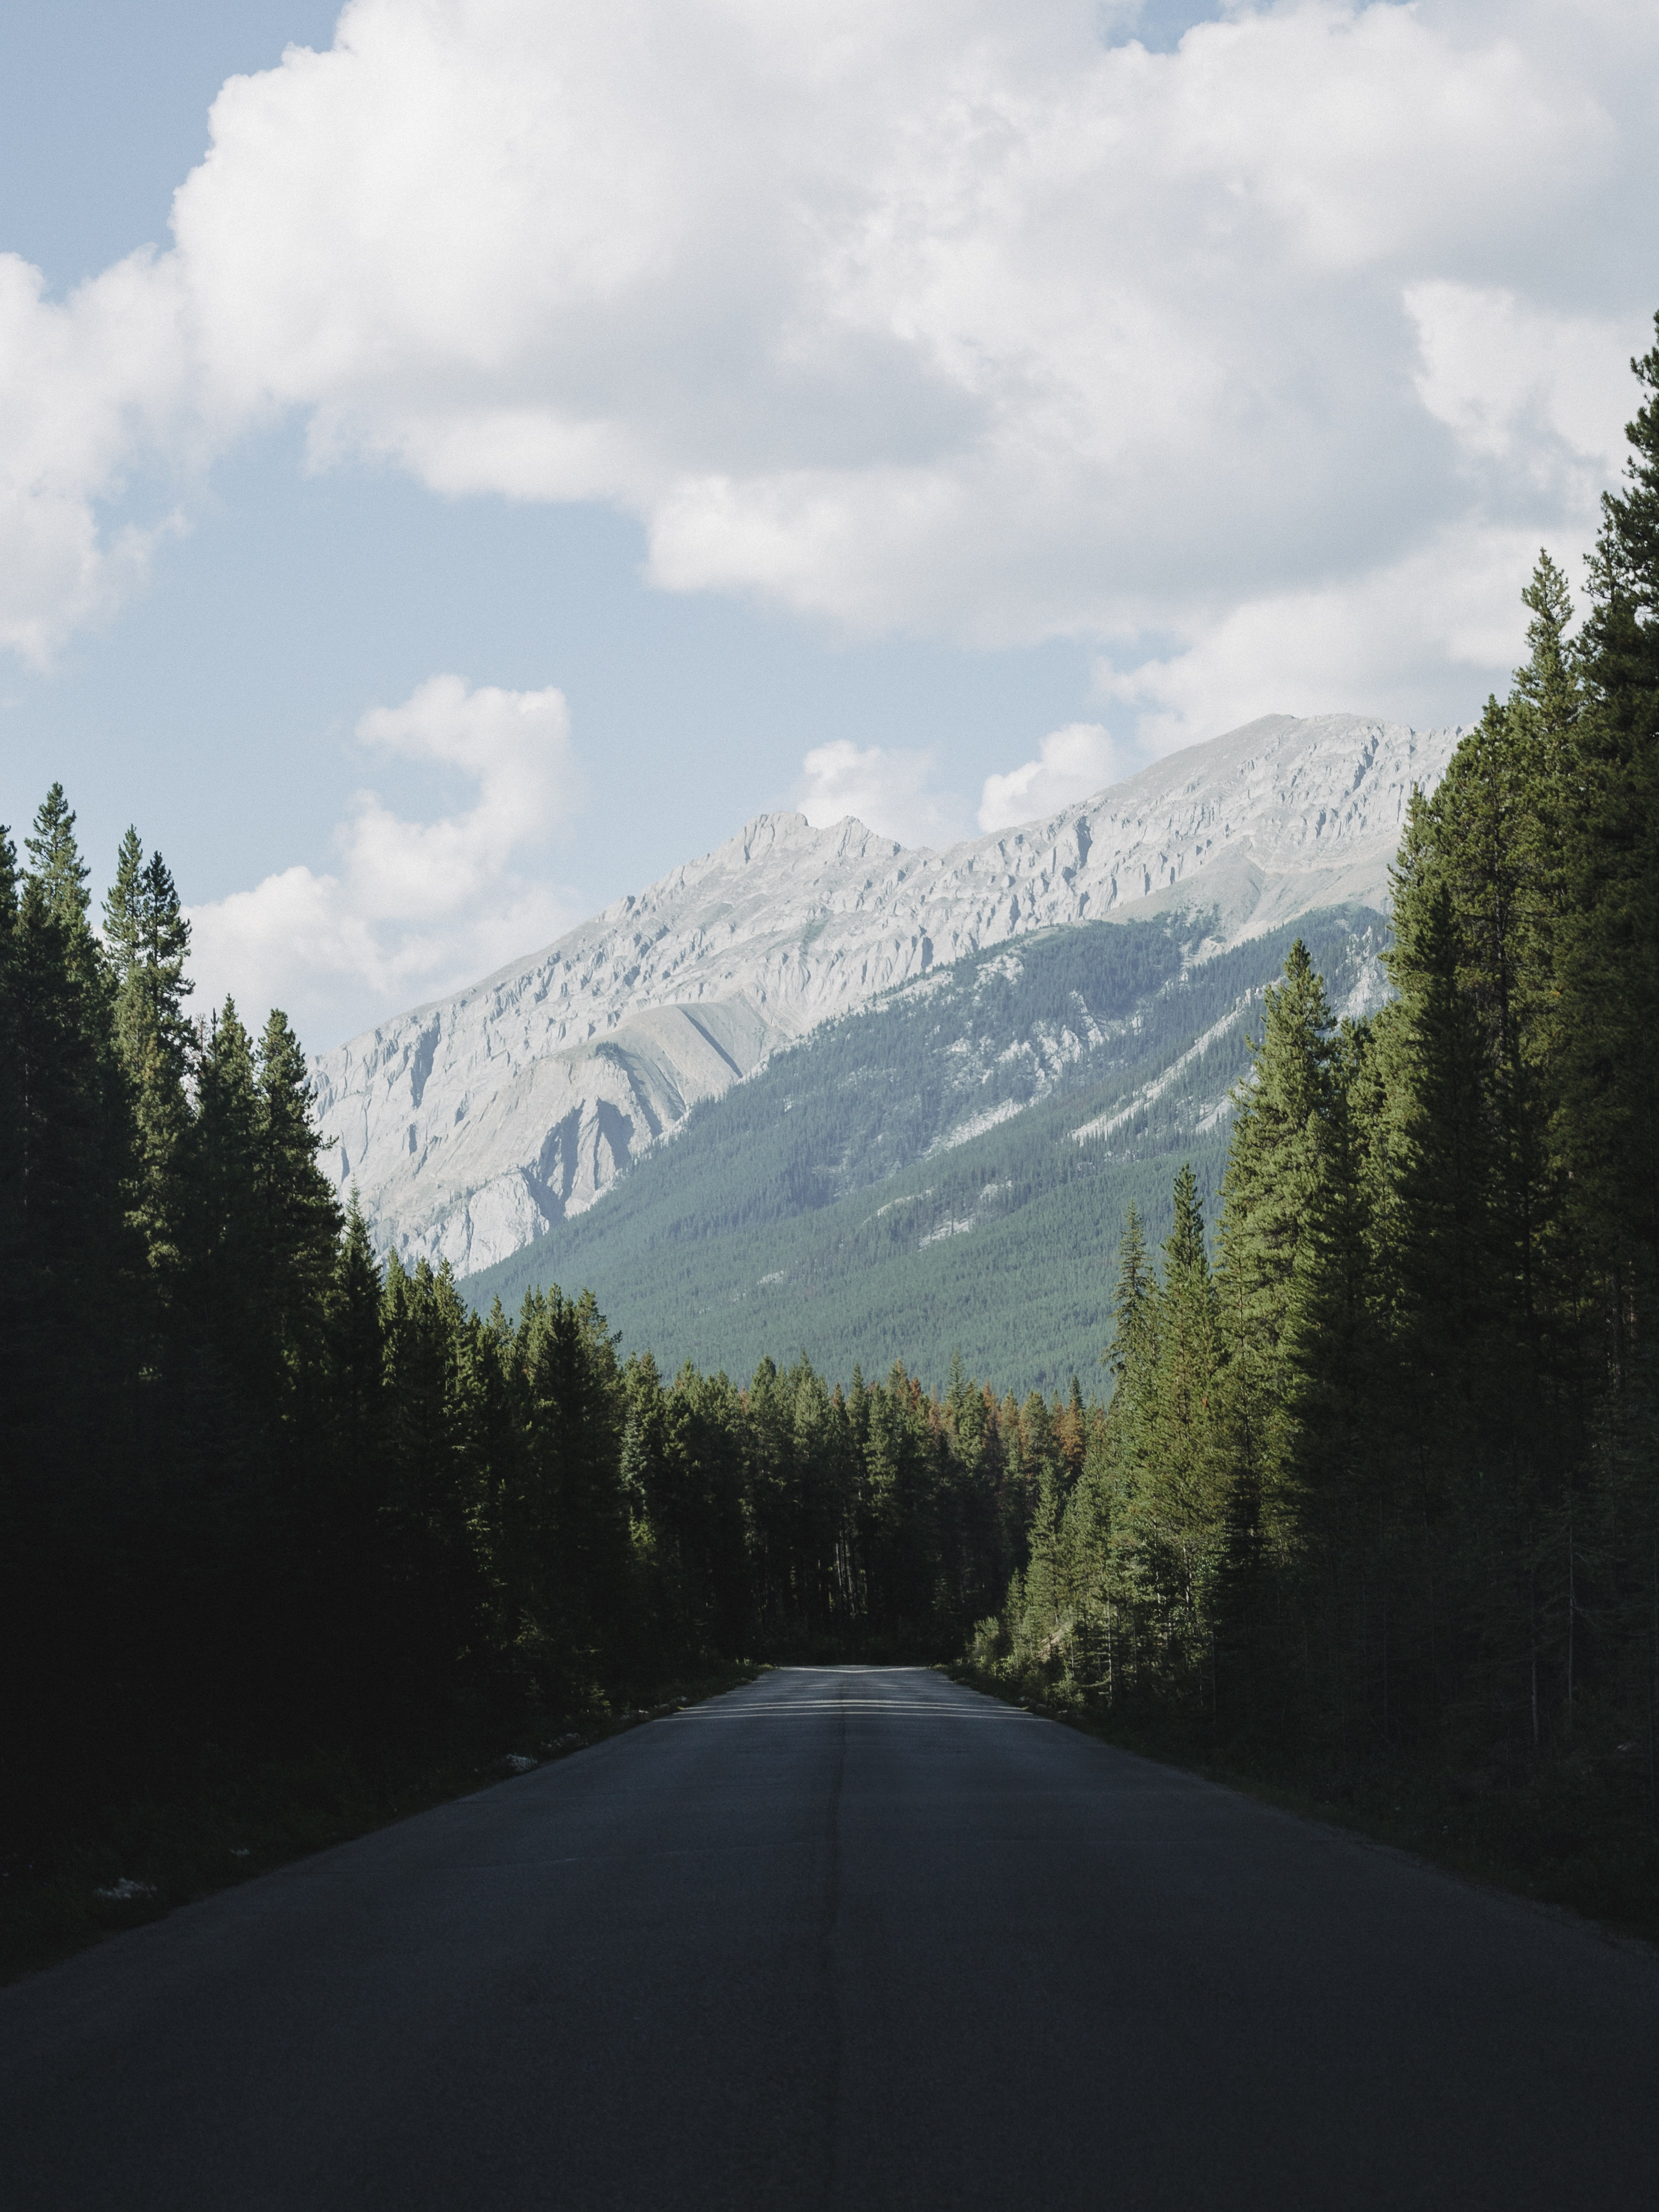 empty road between forest with mountain view